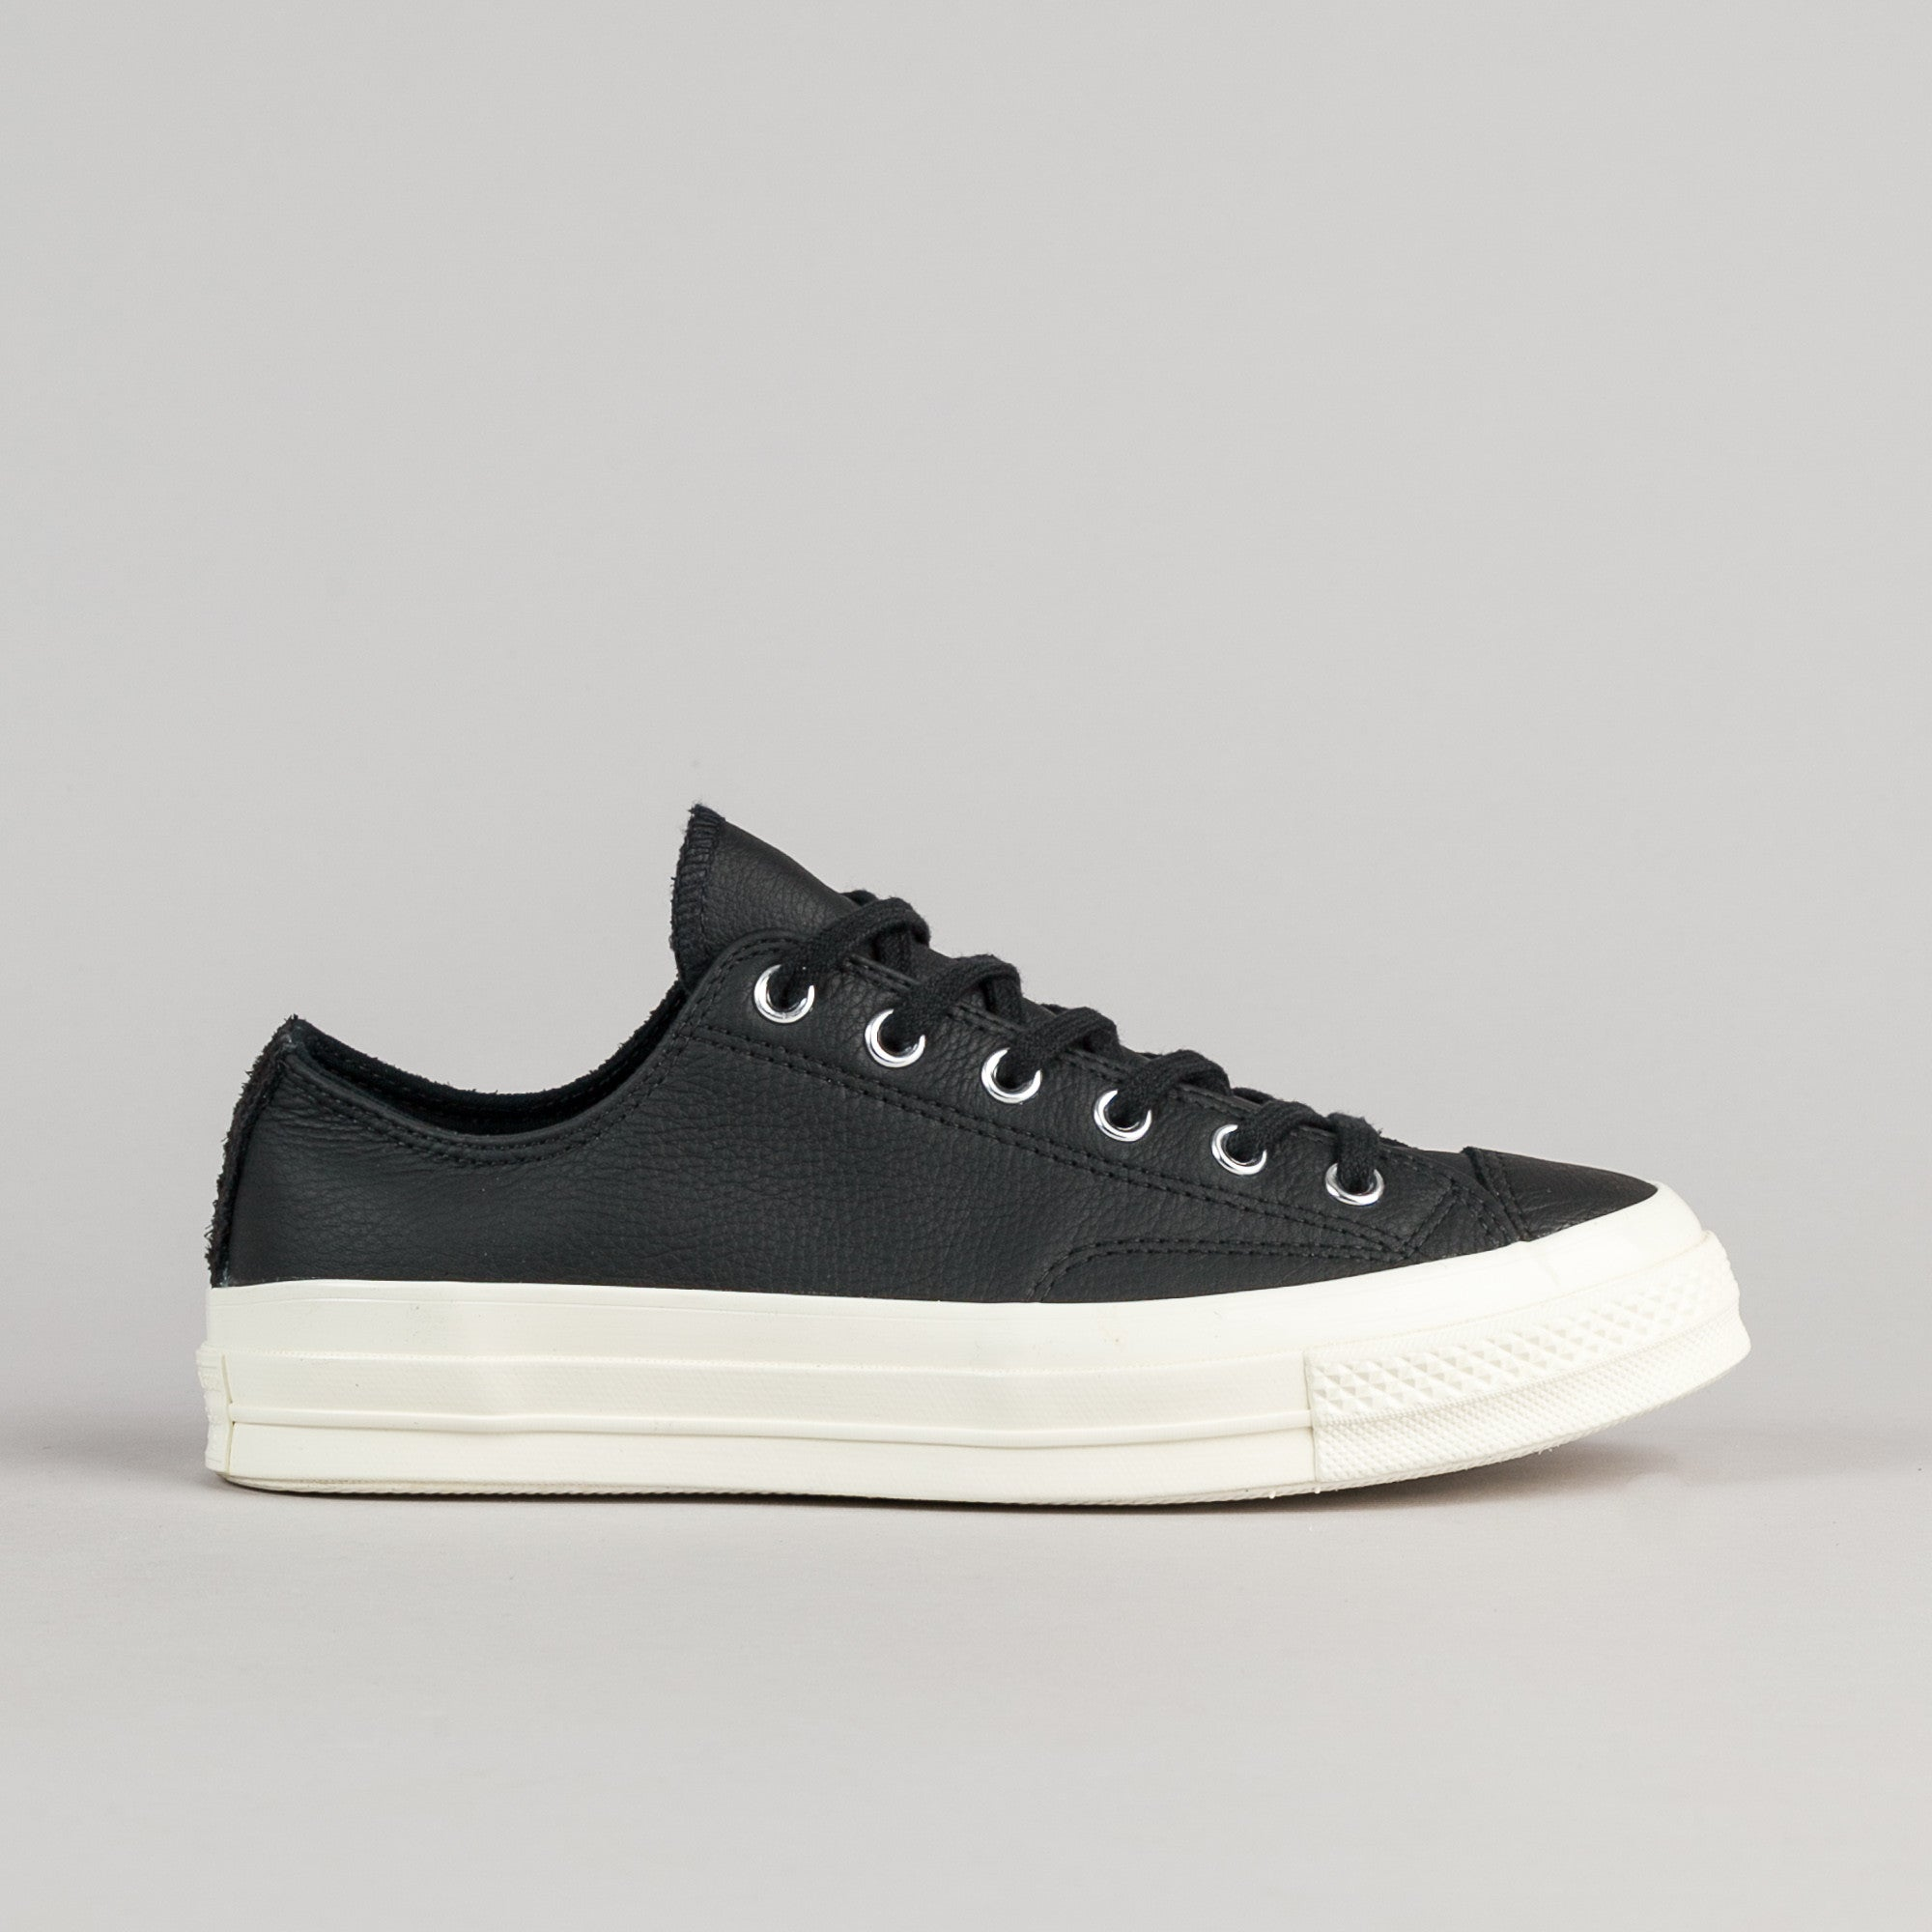 Converse CTAS 70's OX Shoes - Black / Black / Egret